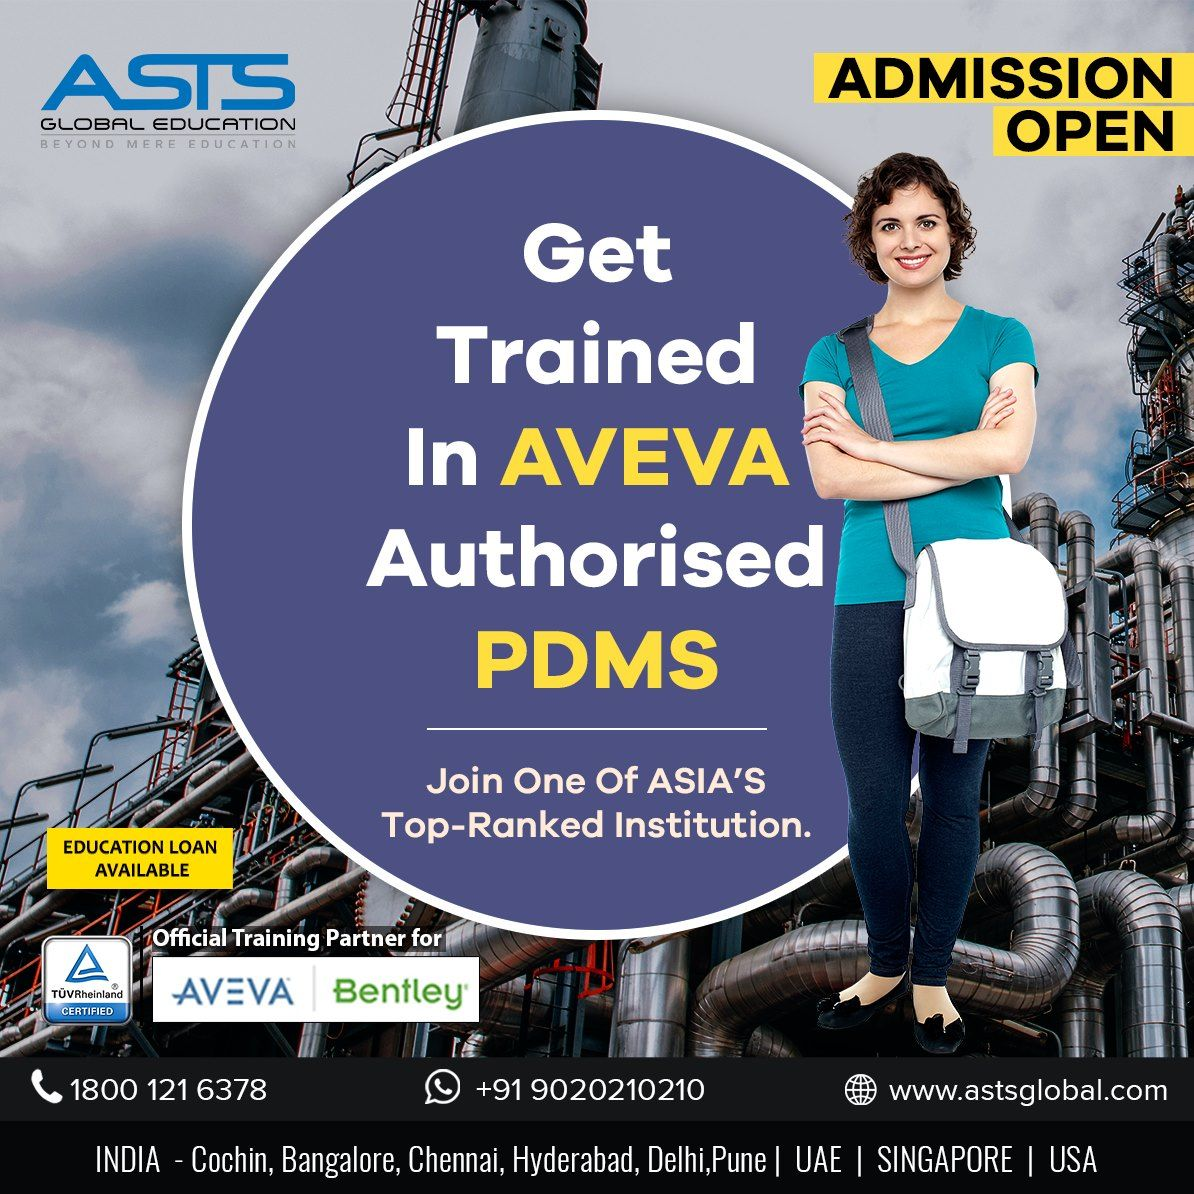 Get trained in Aveva authorised PDMS at ASTS Global